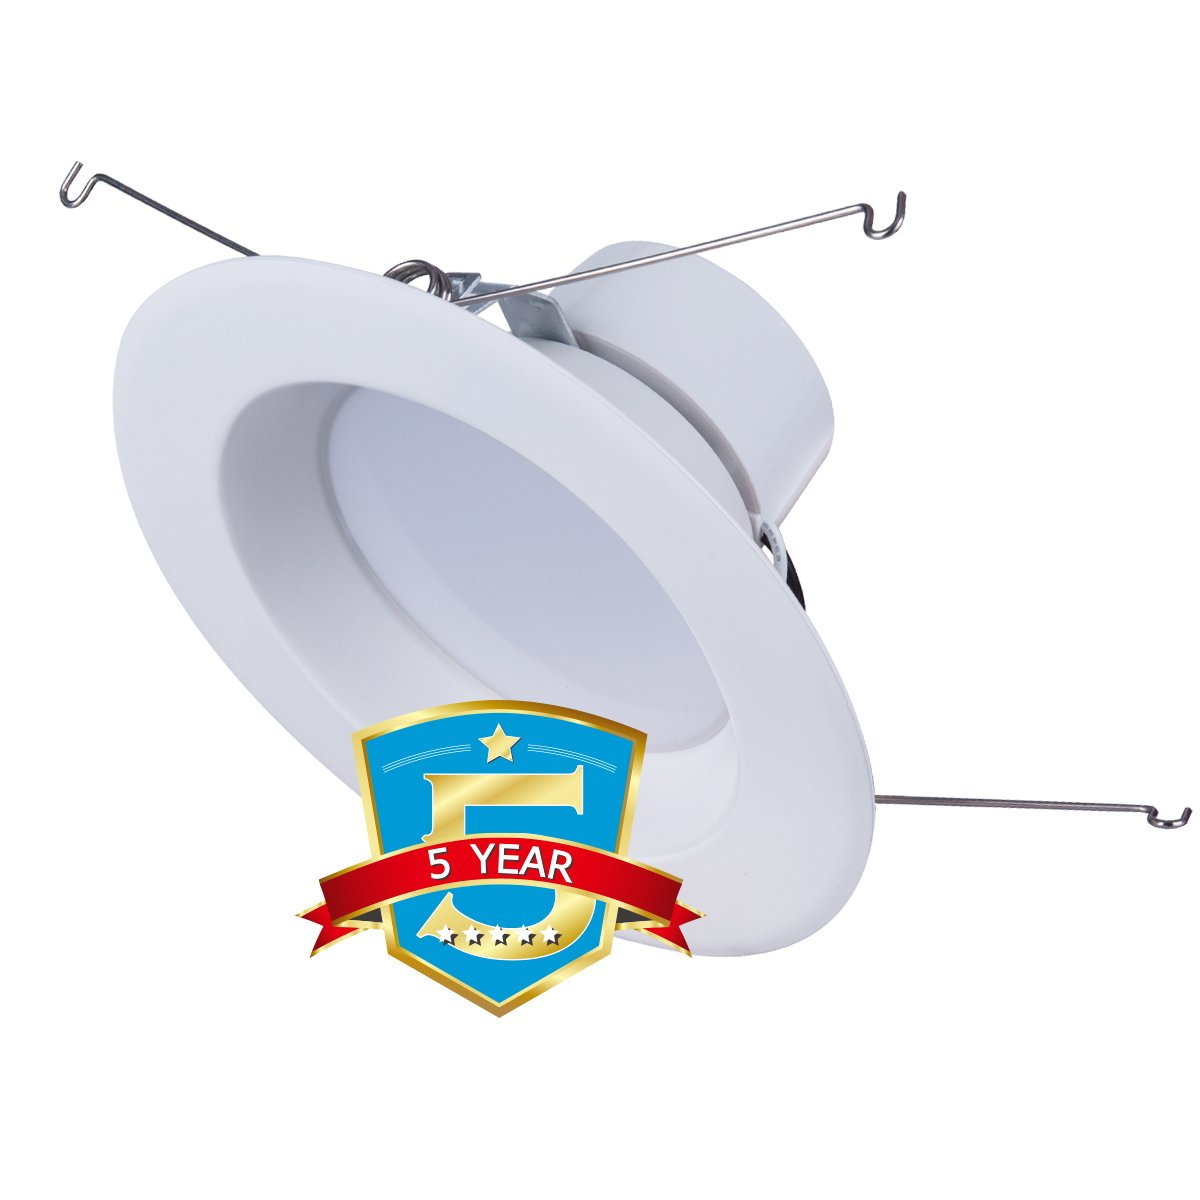 JJC Downlights Retrofit LED Recessed Lighting 5/6 Inch Dimmable 5000K 18W(90W Equiv.)1200LM,Energy Star ETL-Listed